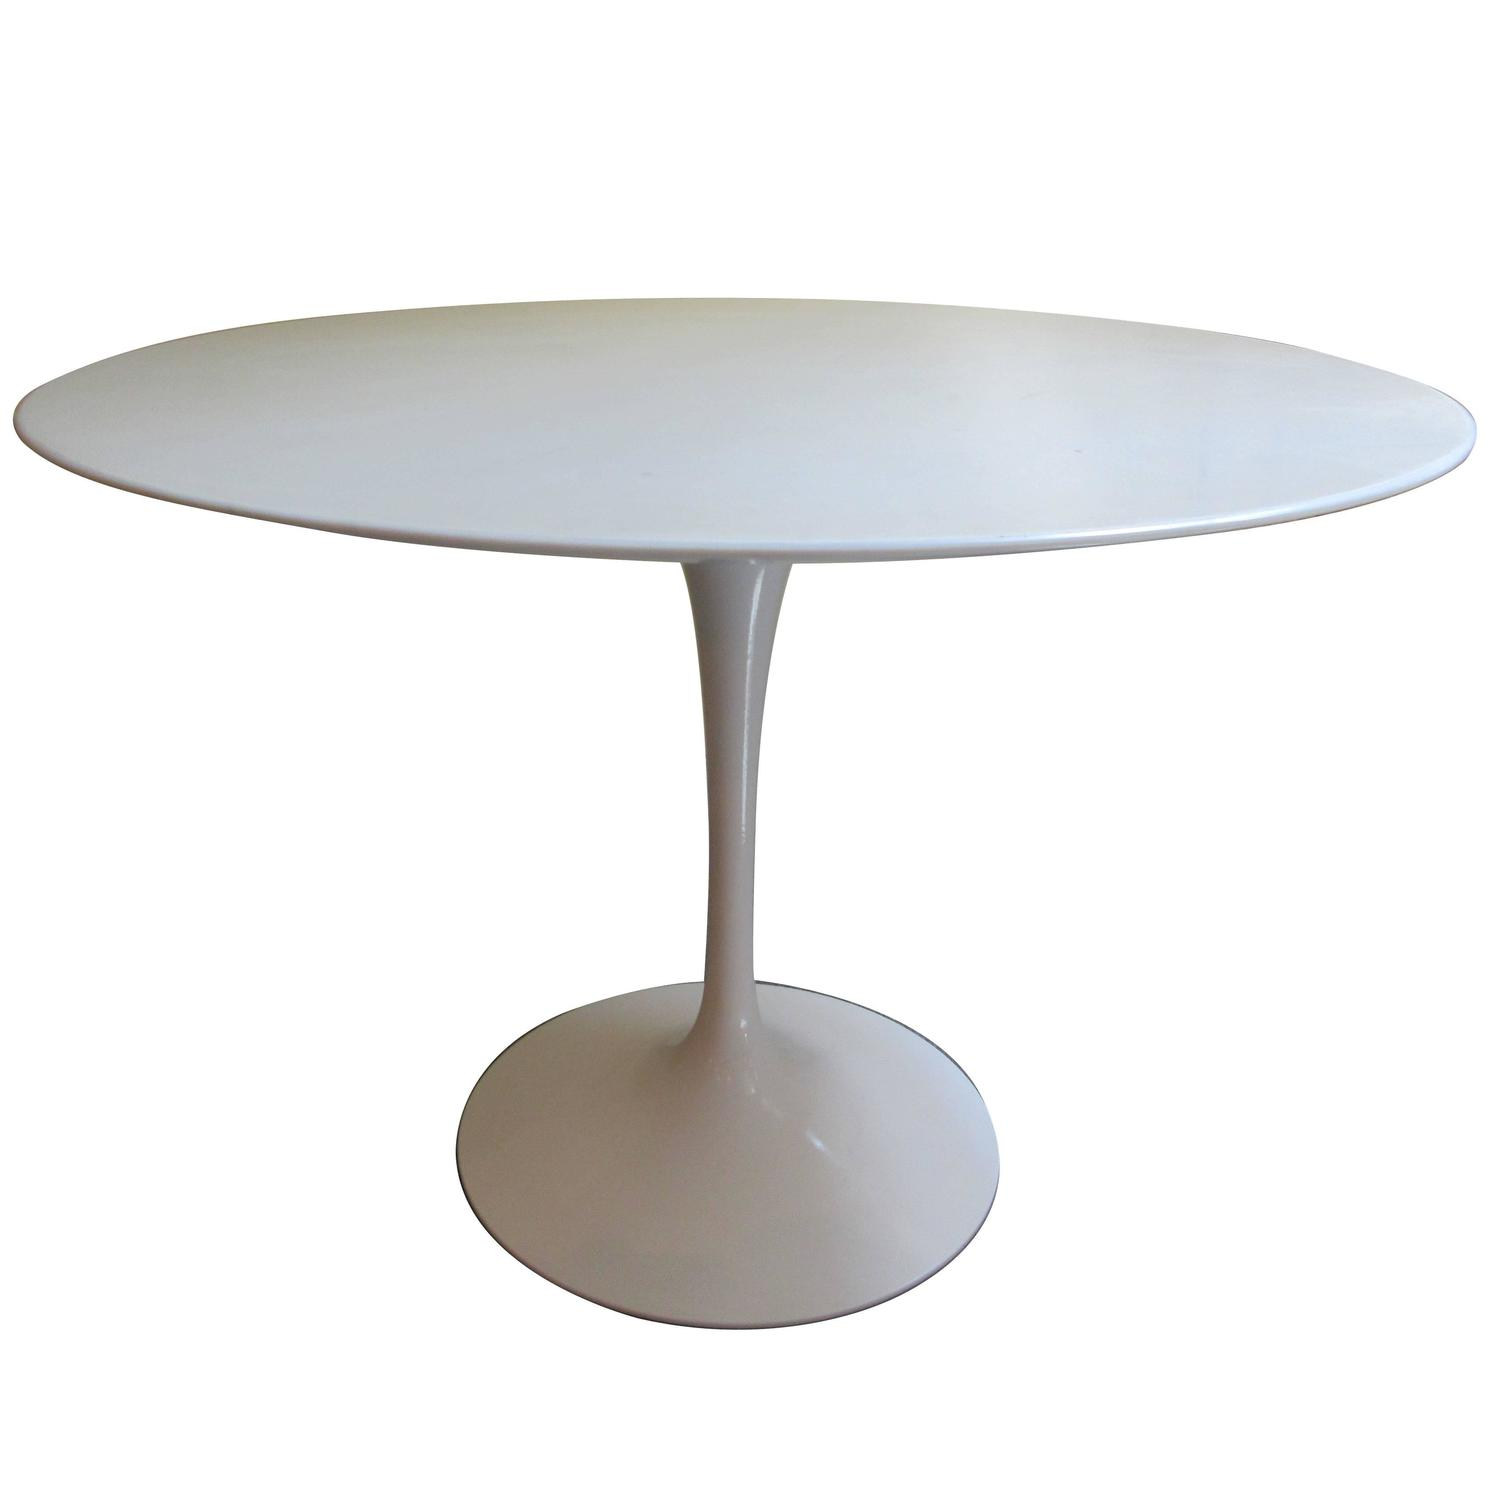 Eero saarinen dining table eero saarinen for knoll for Tulip dining table